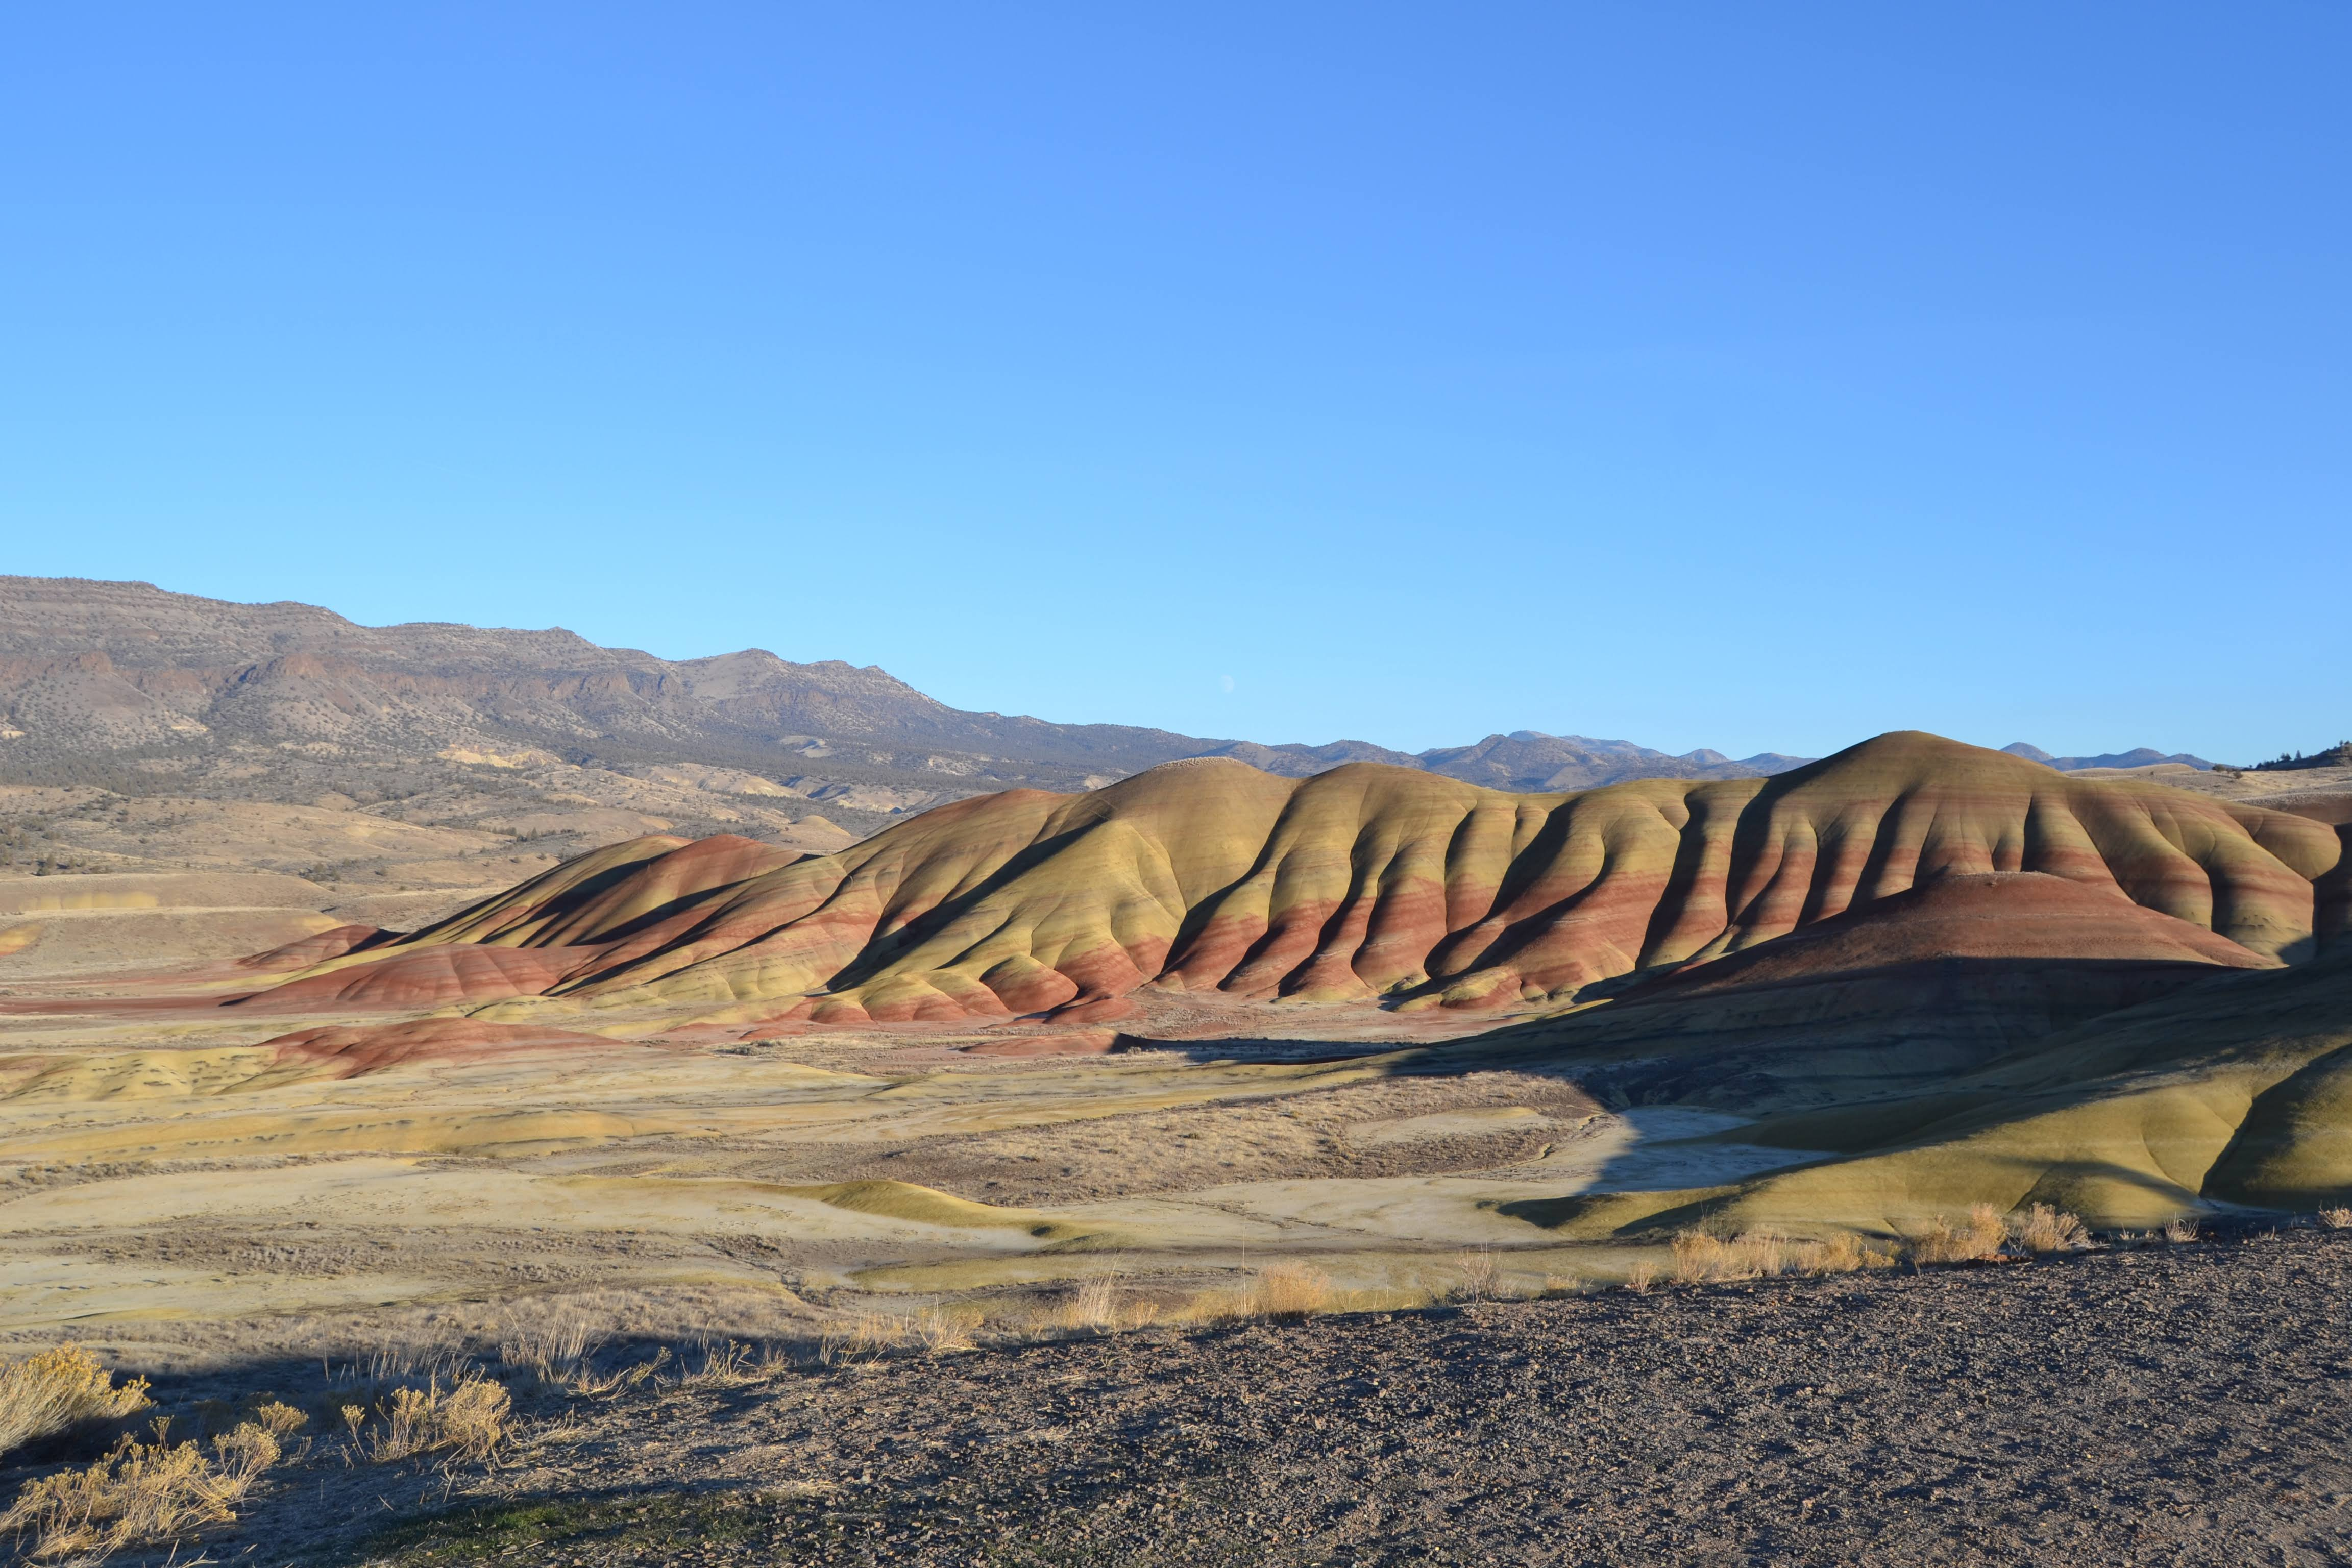 The Painted Hills at the John Day Fossil Beds National Monument.